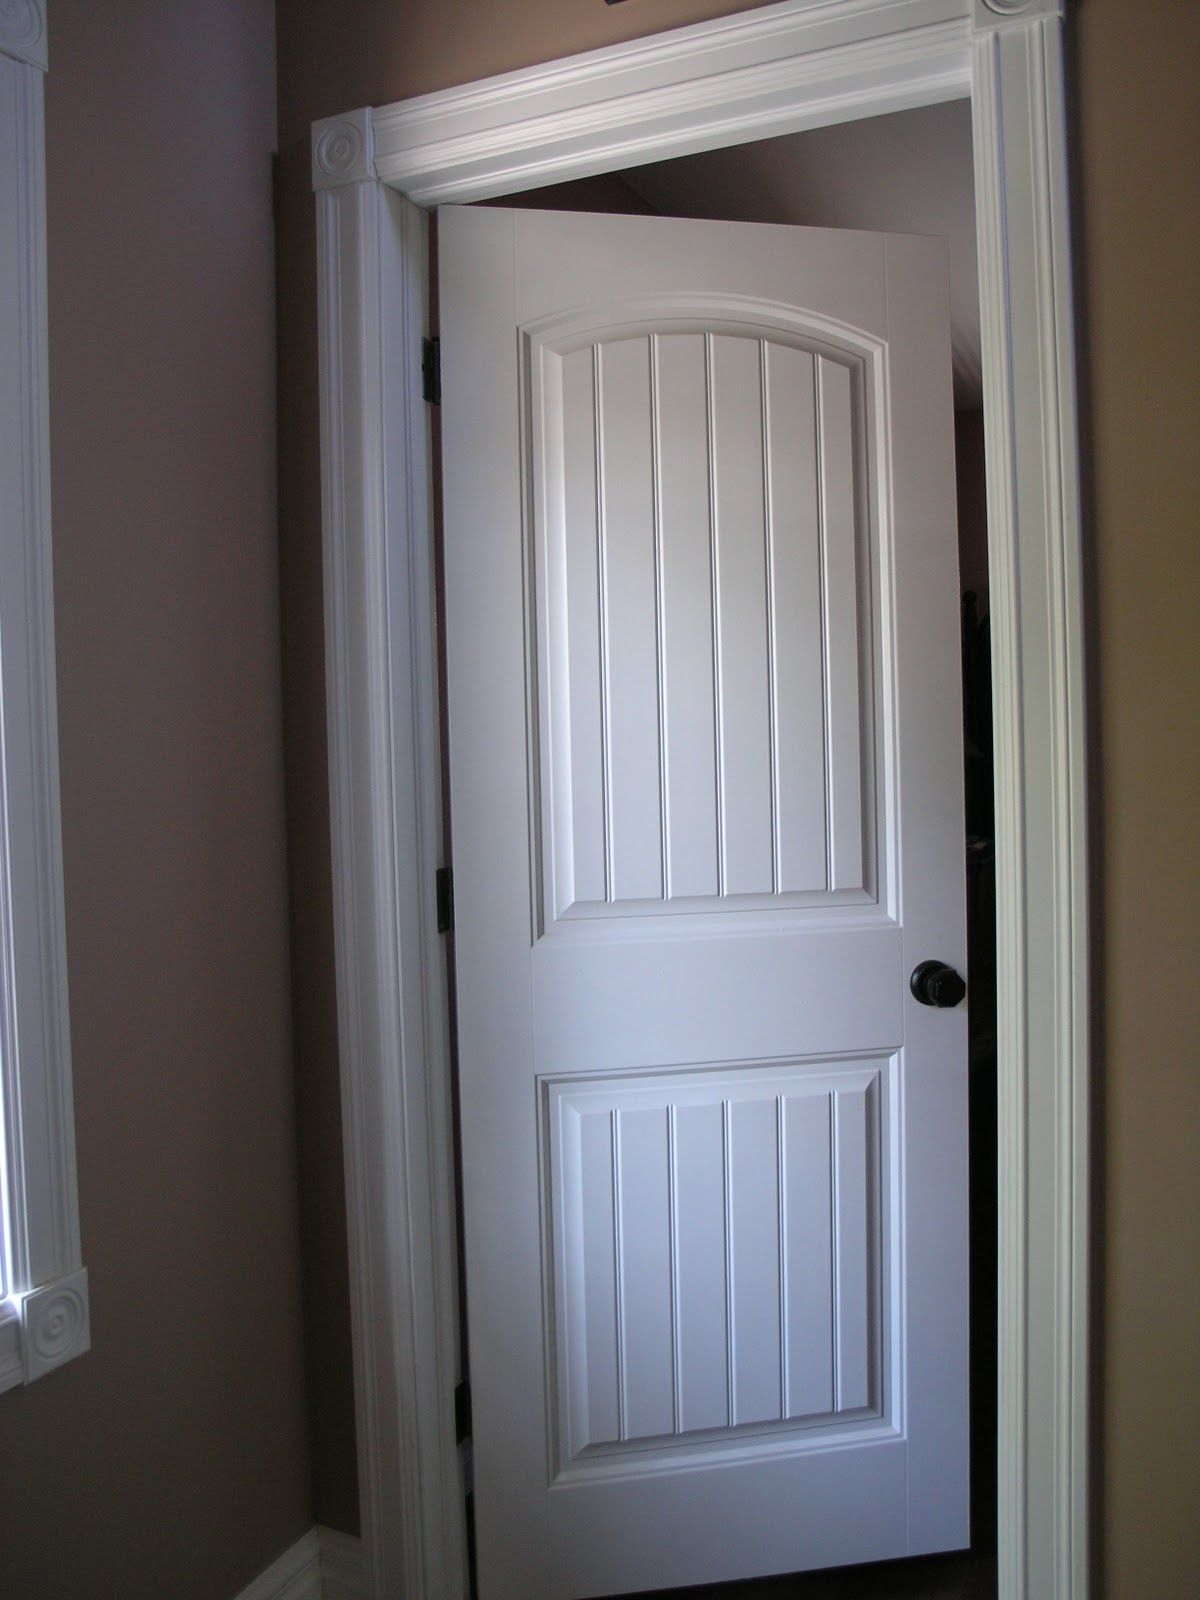 Interior Doors Are Of The Colonial Style With Emtek Door Handles